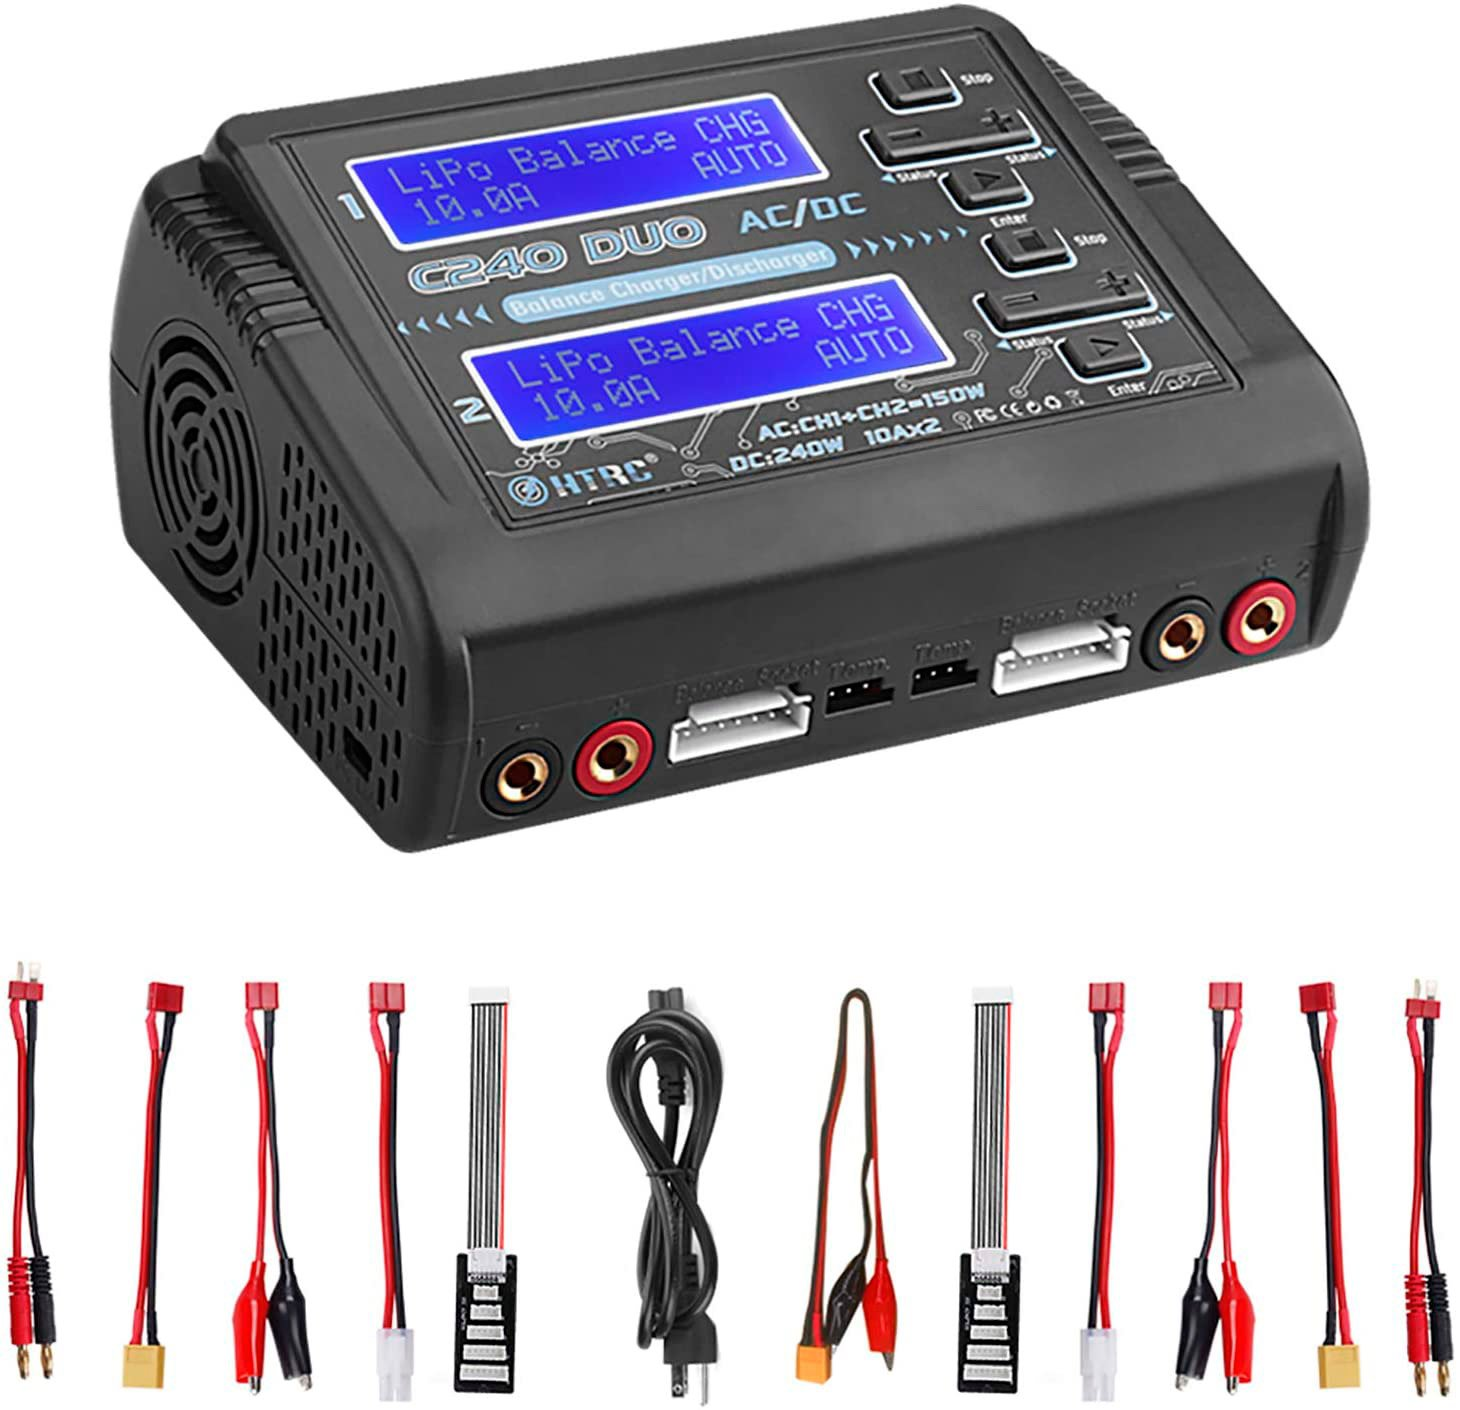 HTRC C240 LiPo Battery Charger review